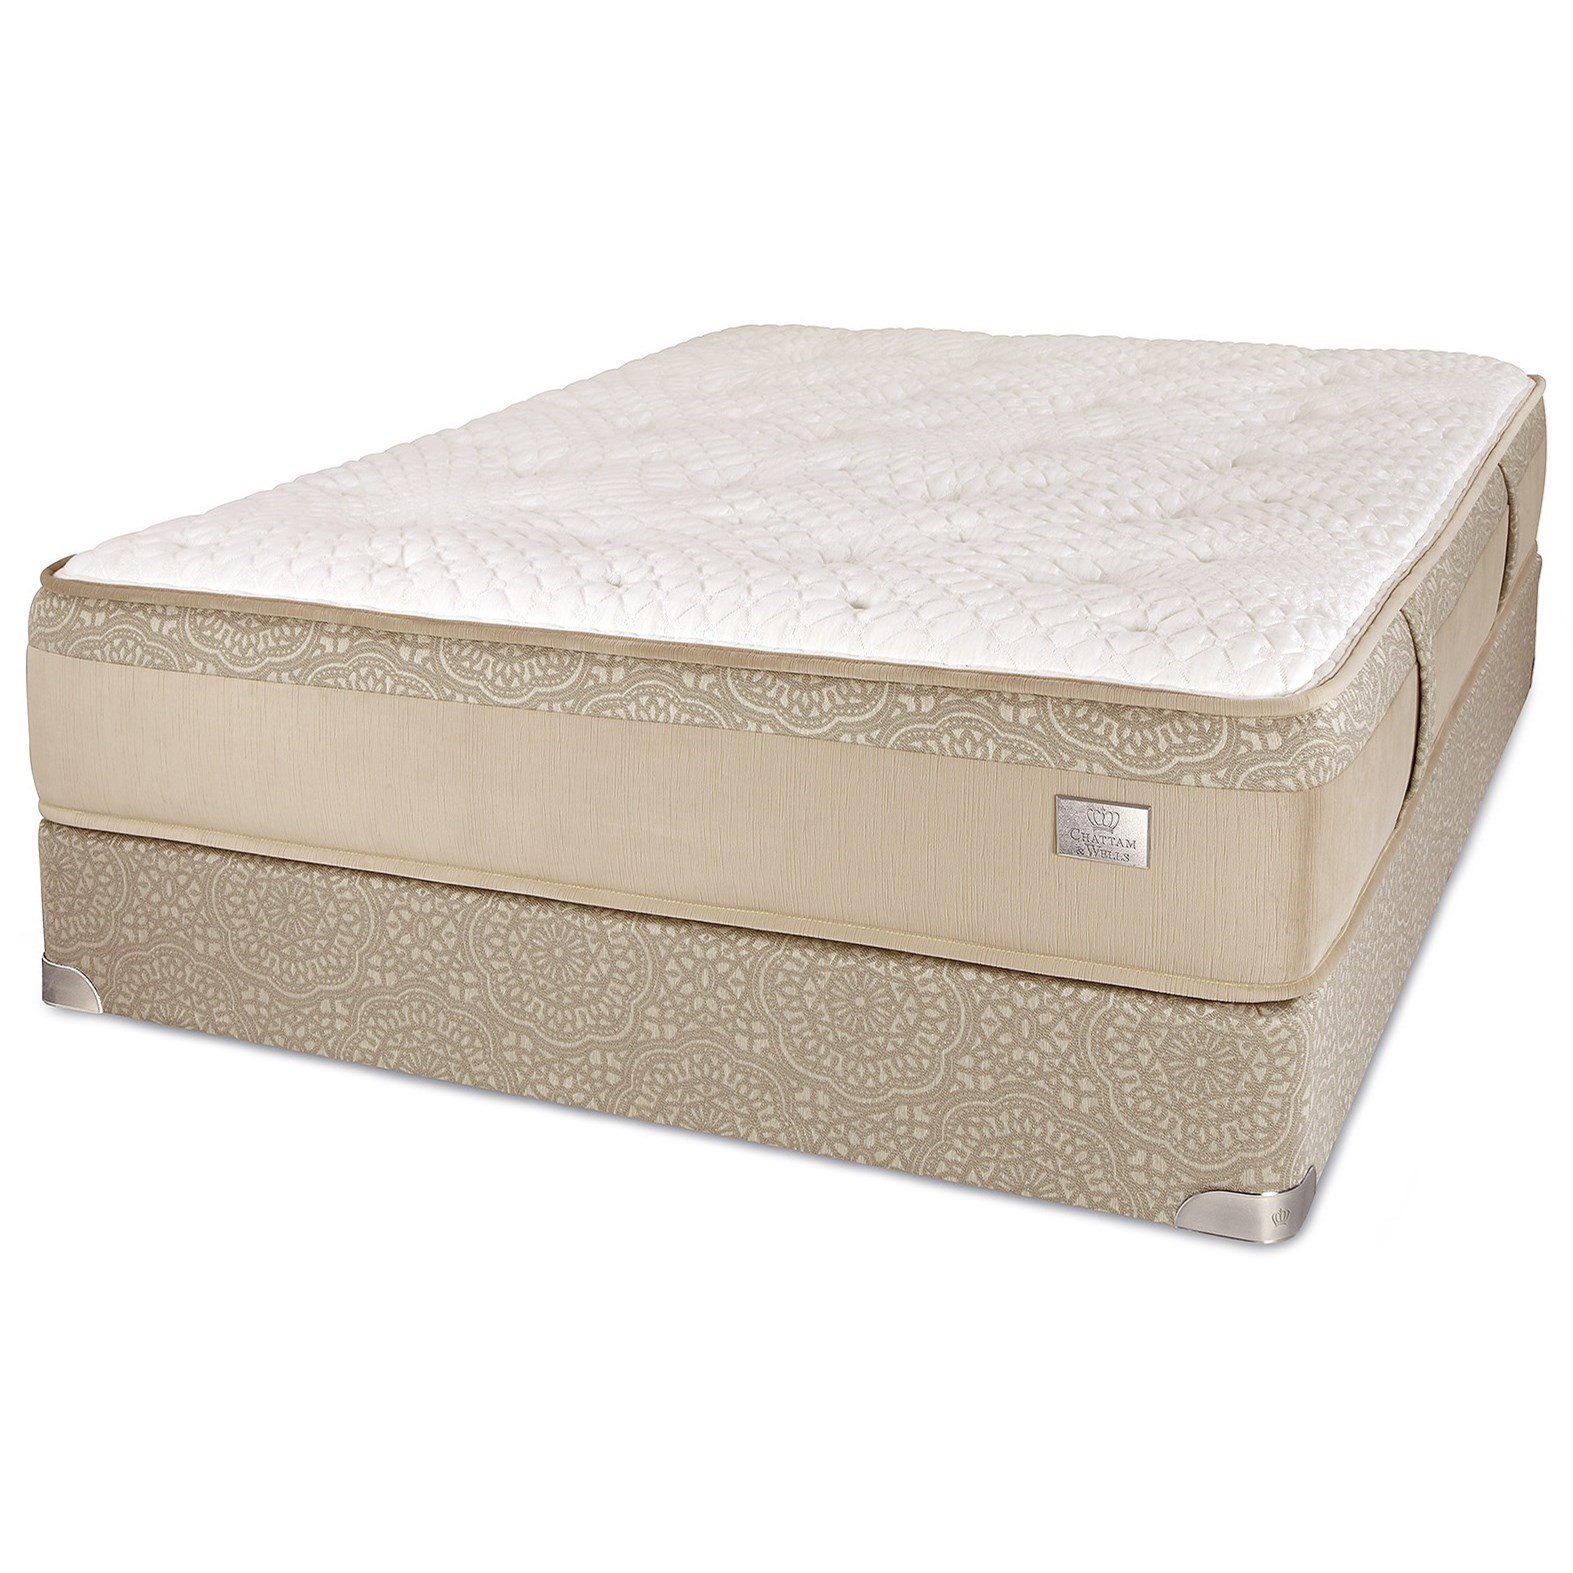 Crown Plush King Pocketed Coil Mattress Set by Spring Air at Steger's Furniture